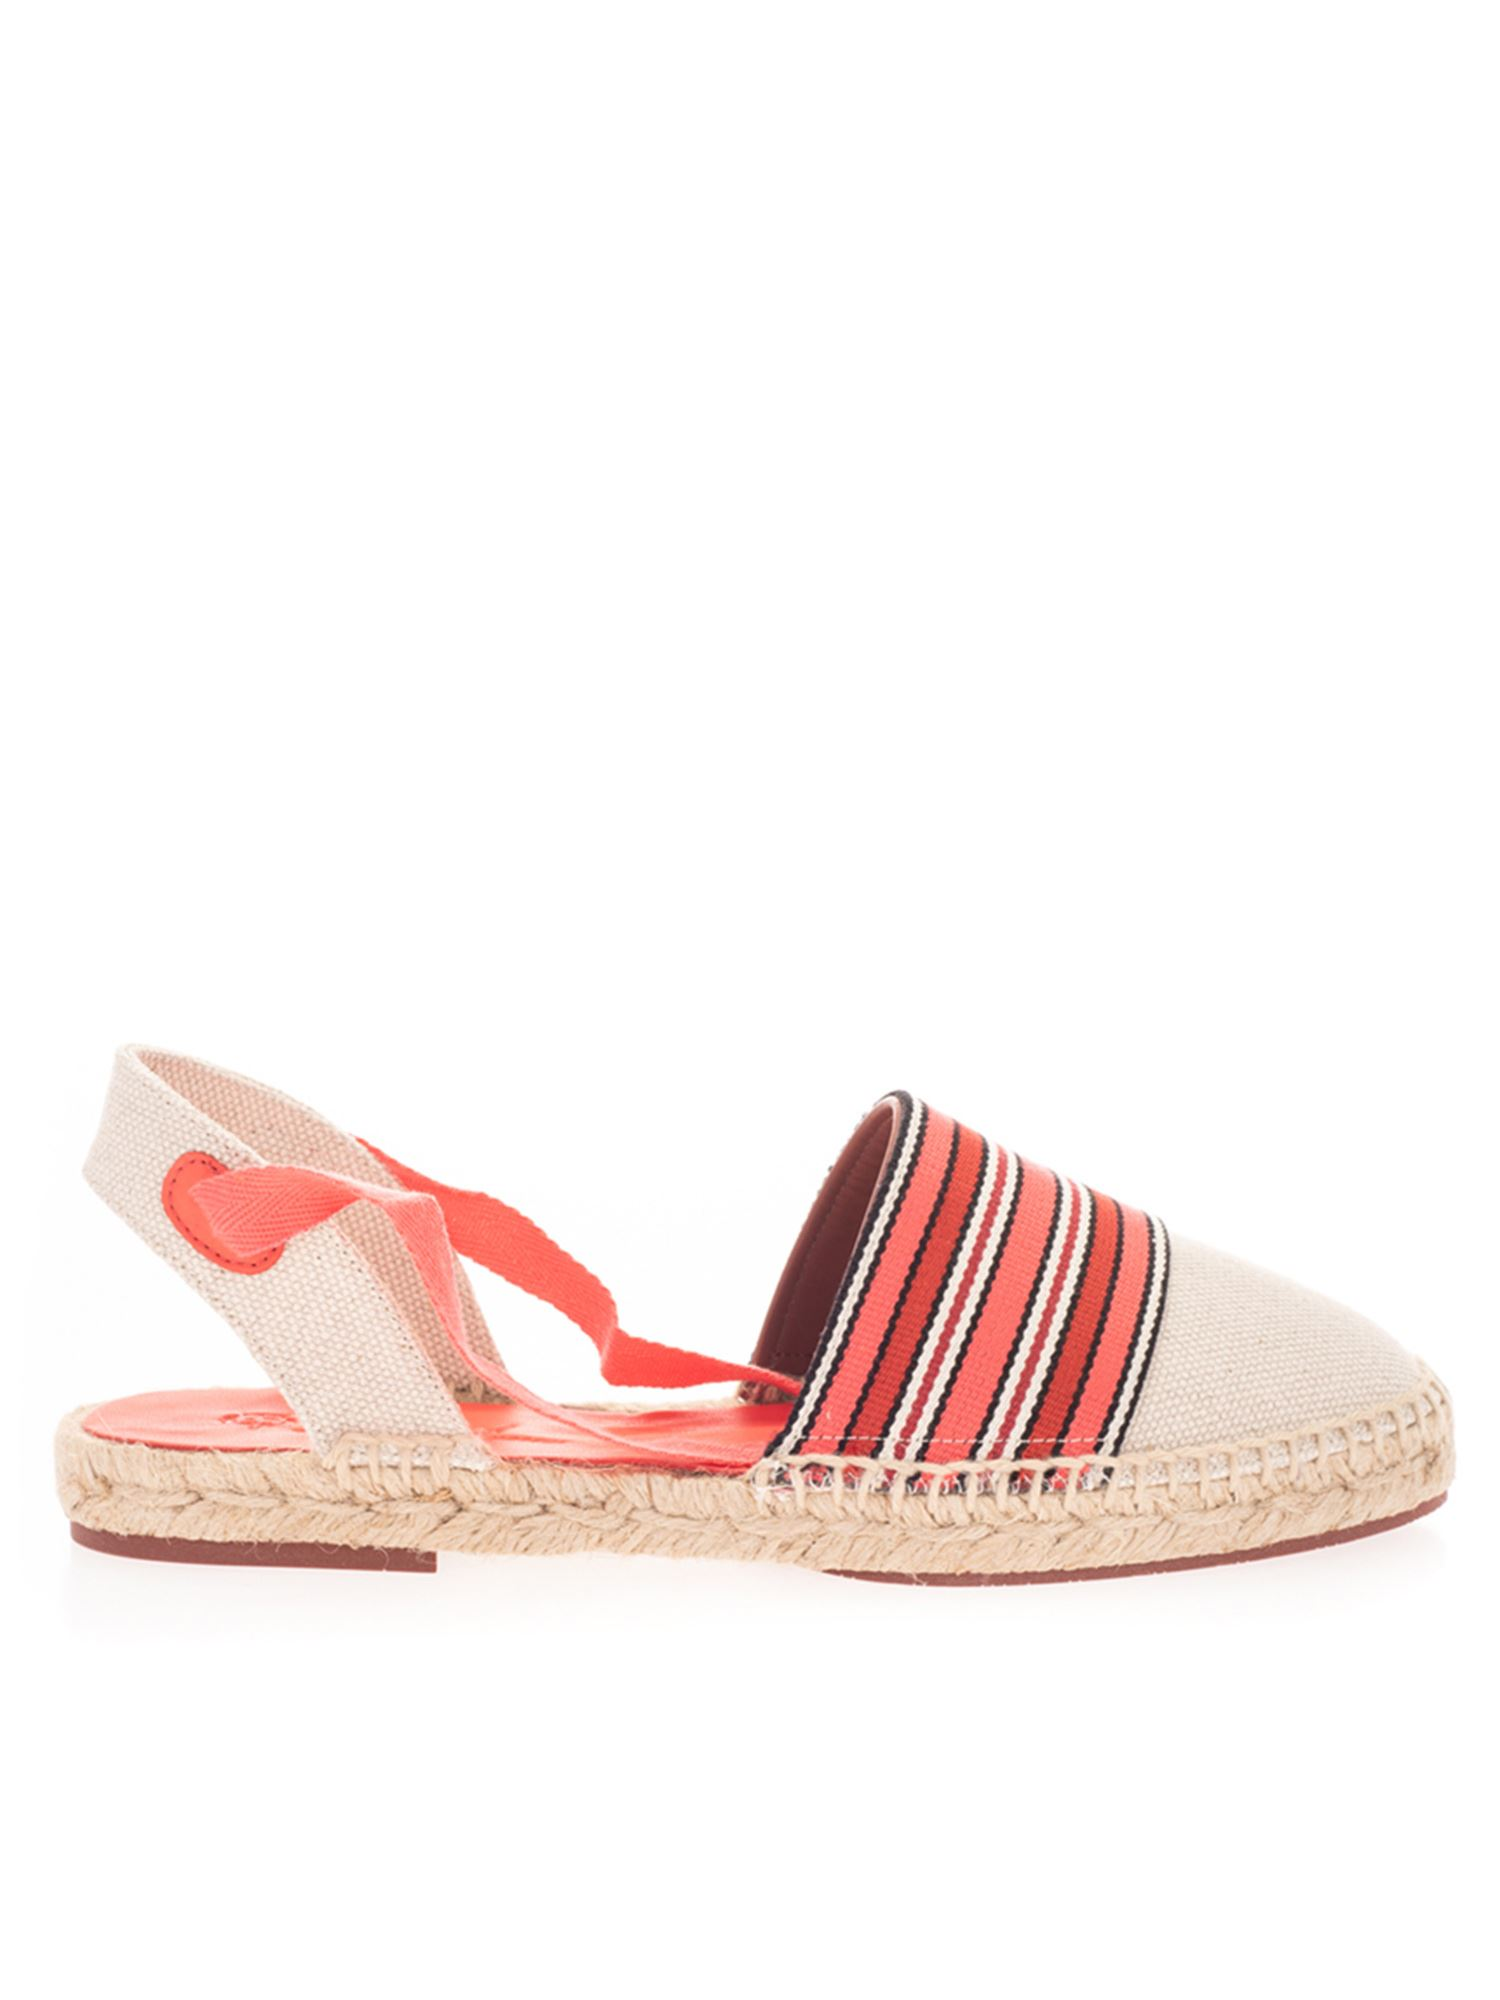 Loro Piana ESPADRILLES IN BEIGE AND SHADES OF RED